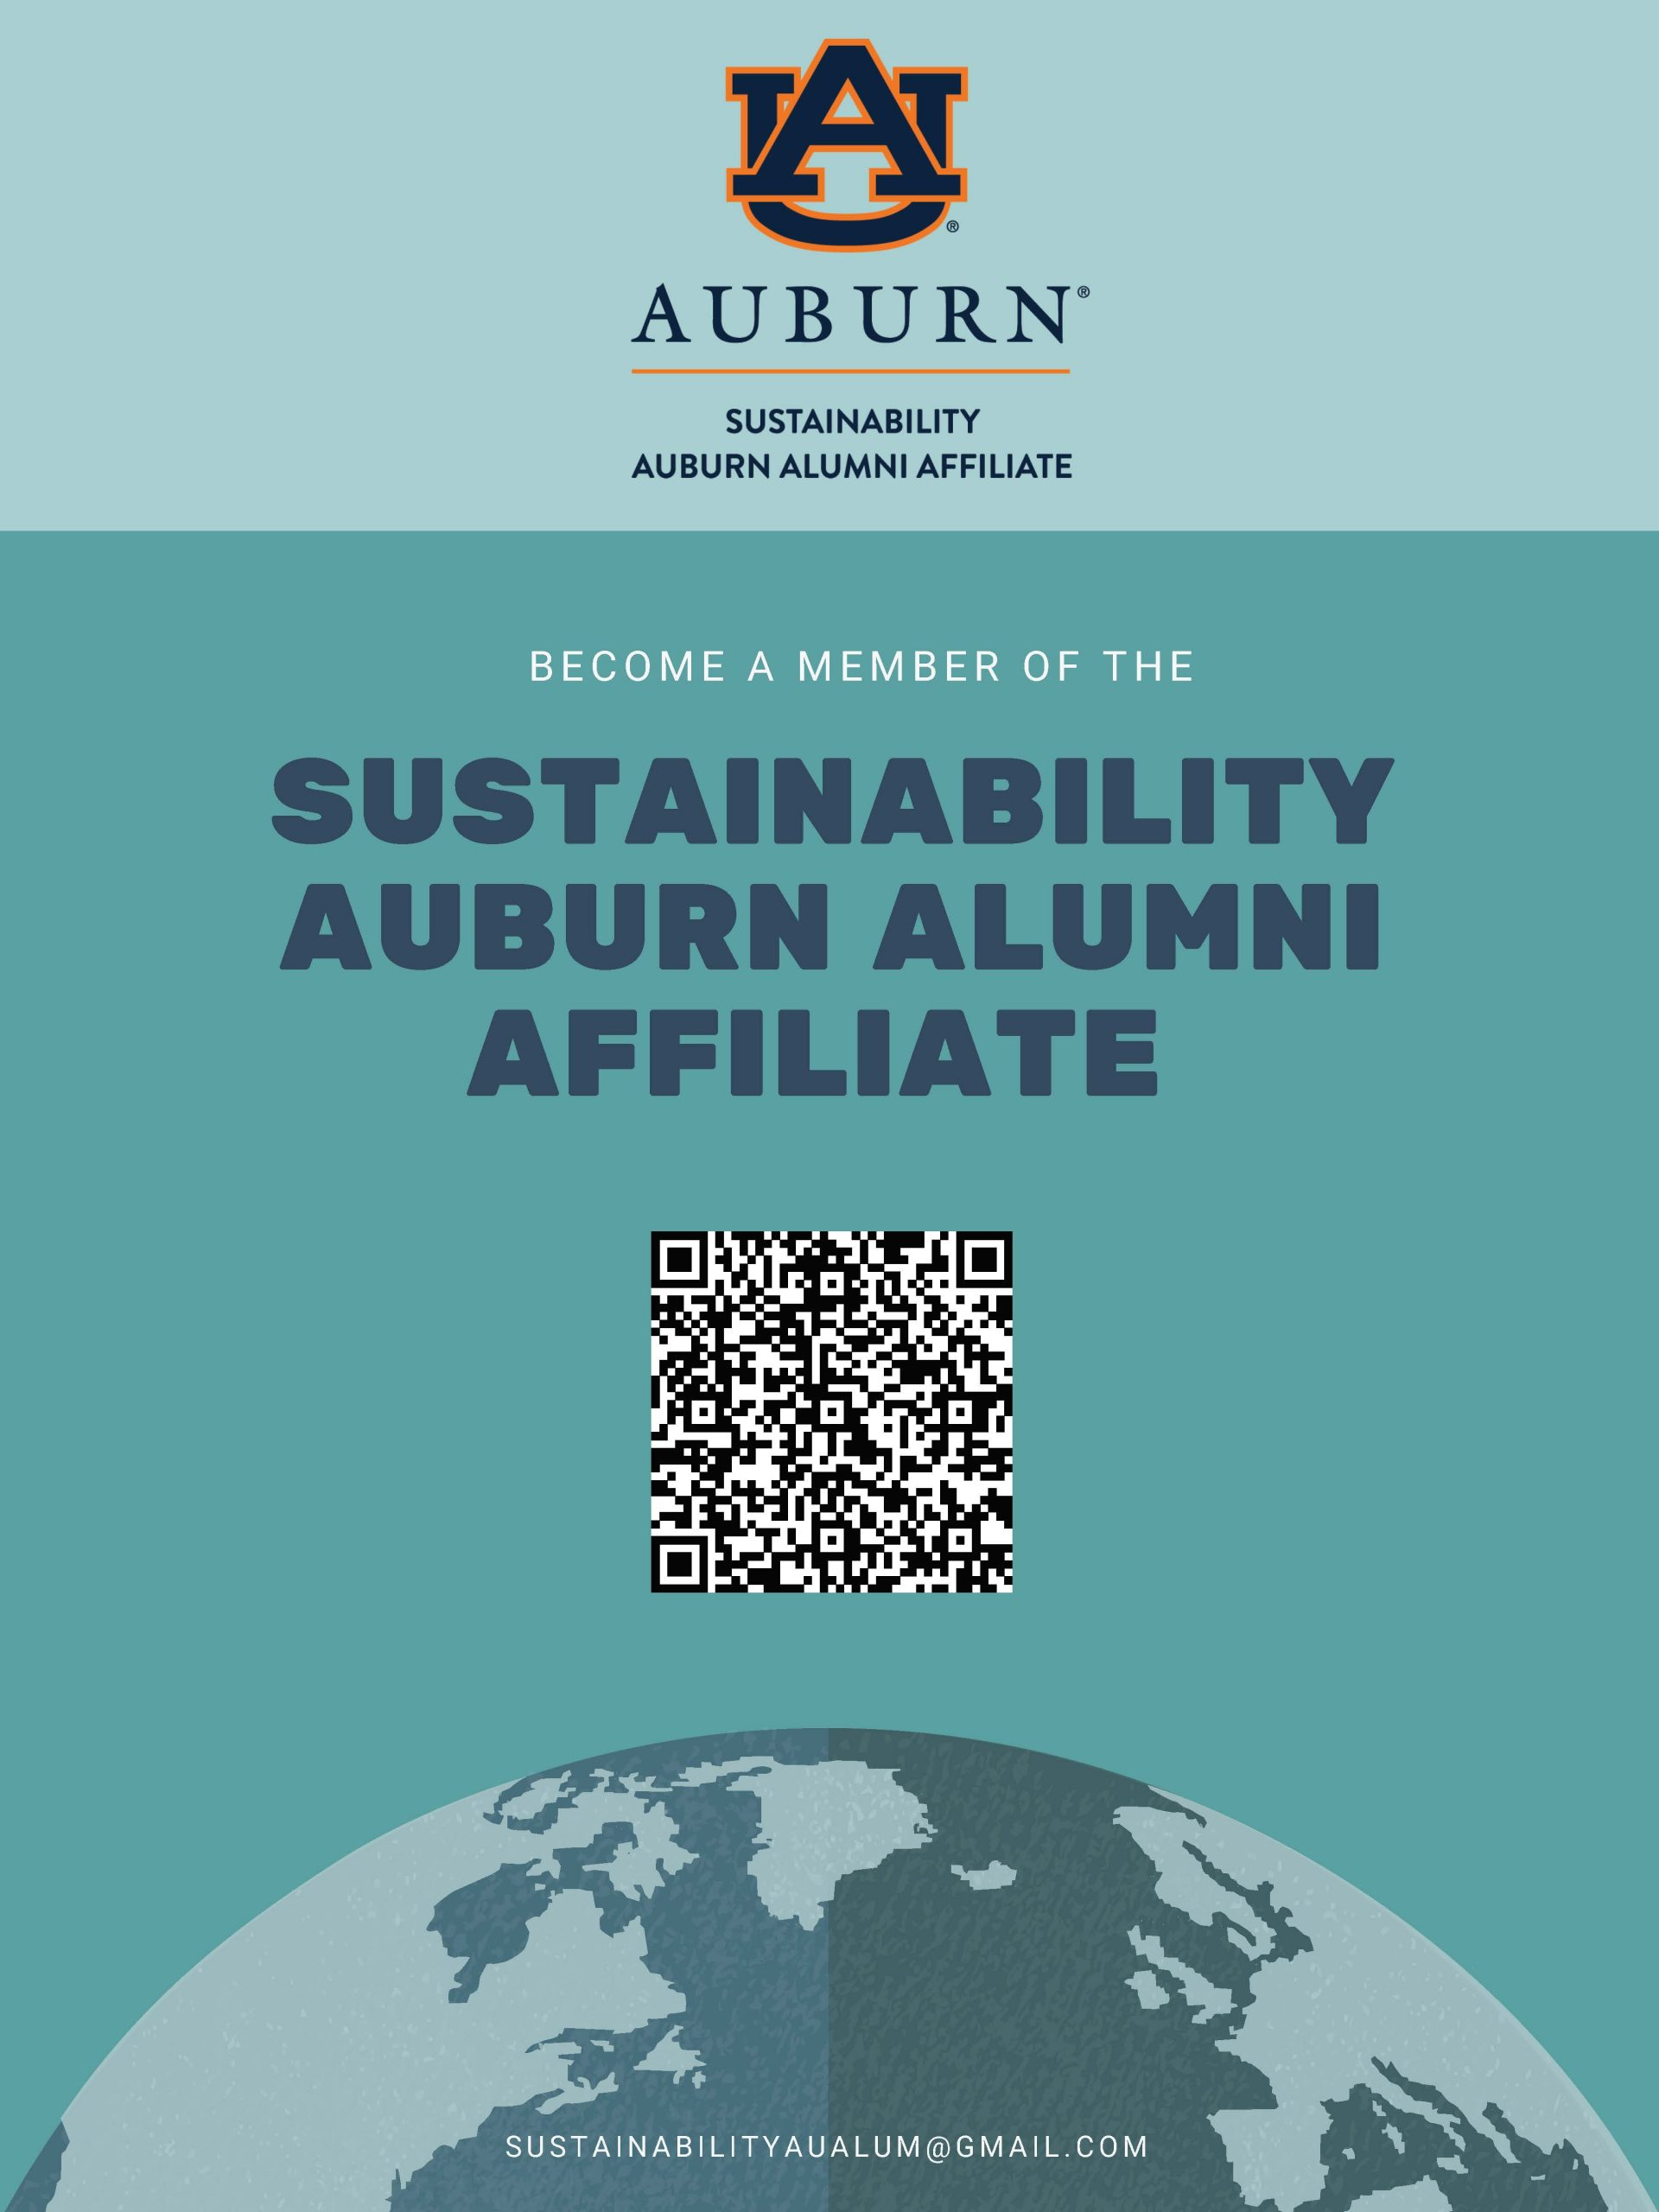 Image with a QR Code to join the Sustainability Auburn Alumni Affiliate